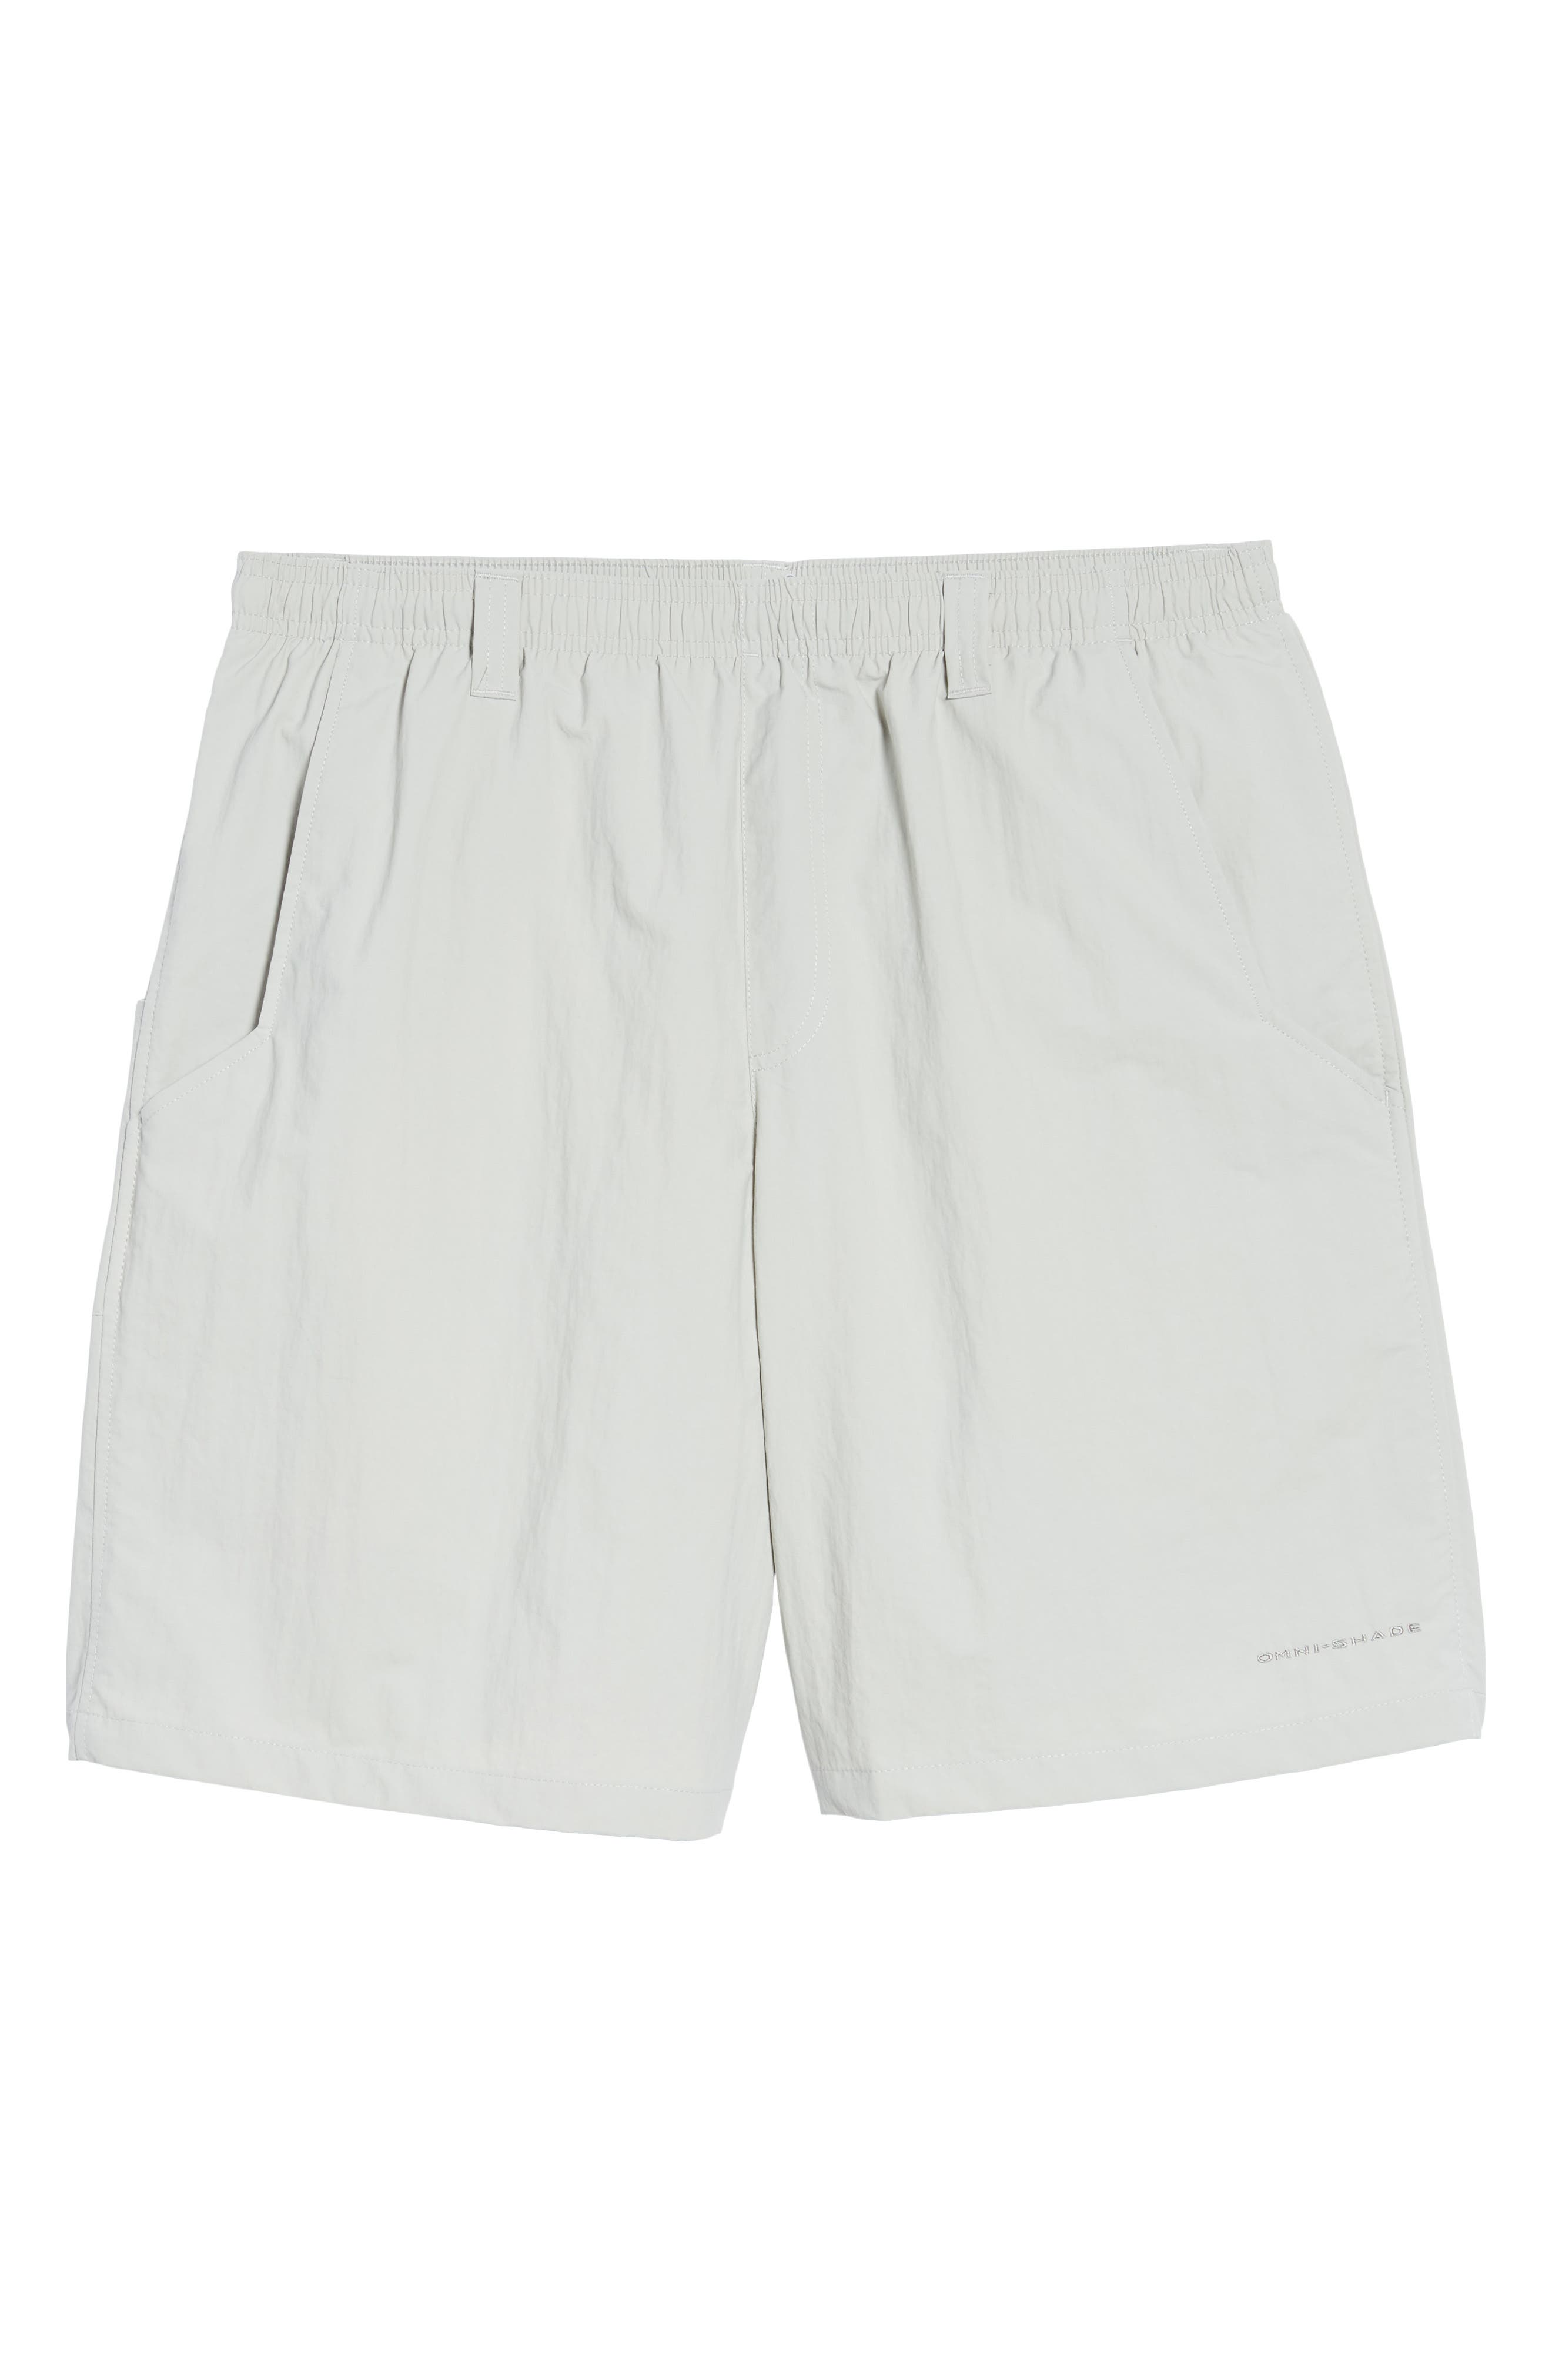 Backcast III Swim Trunks,                             Alternate thumbnail 6, color,                             COOL GREY